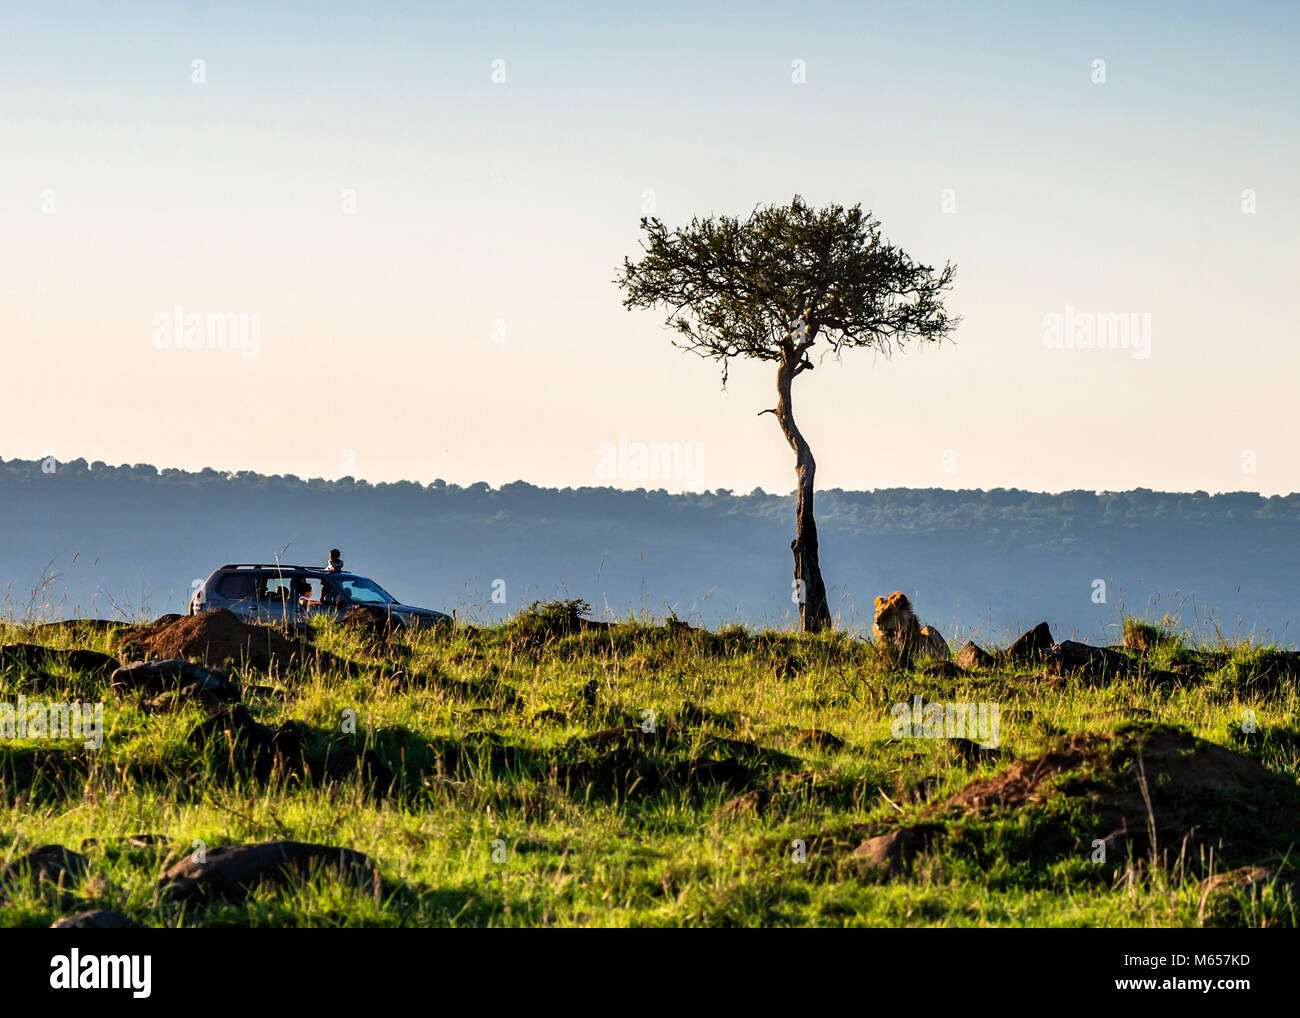 Safari view with truck and lion in Kenya Stock Photo